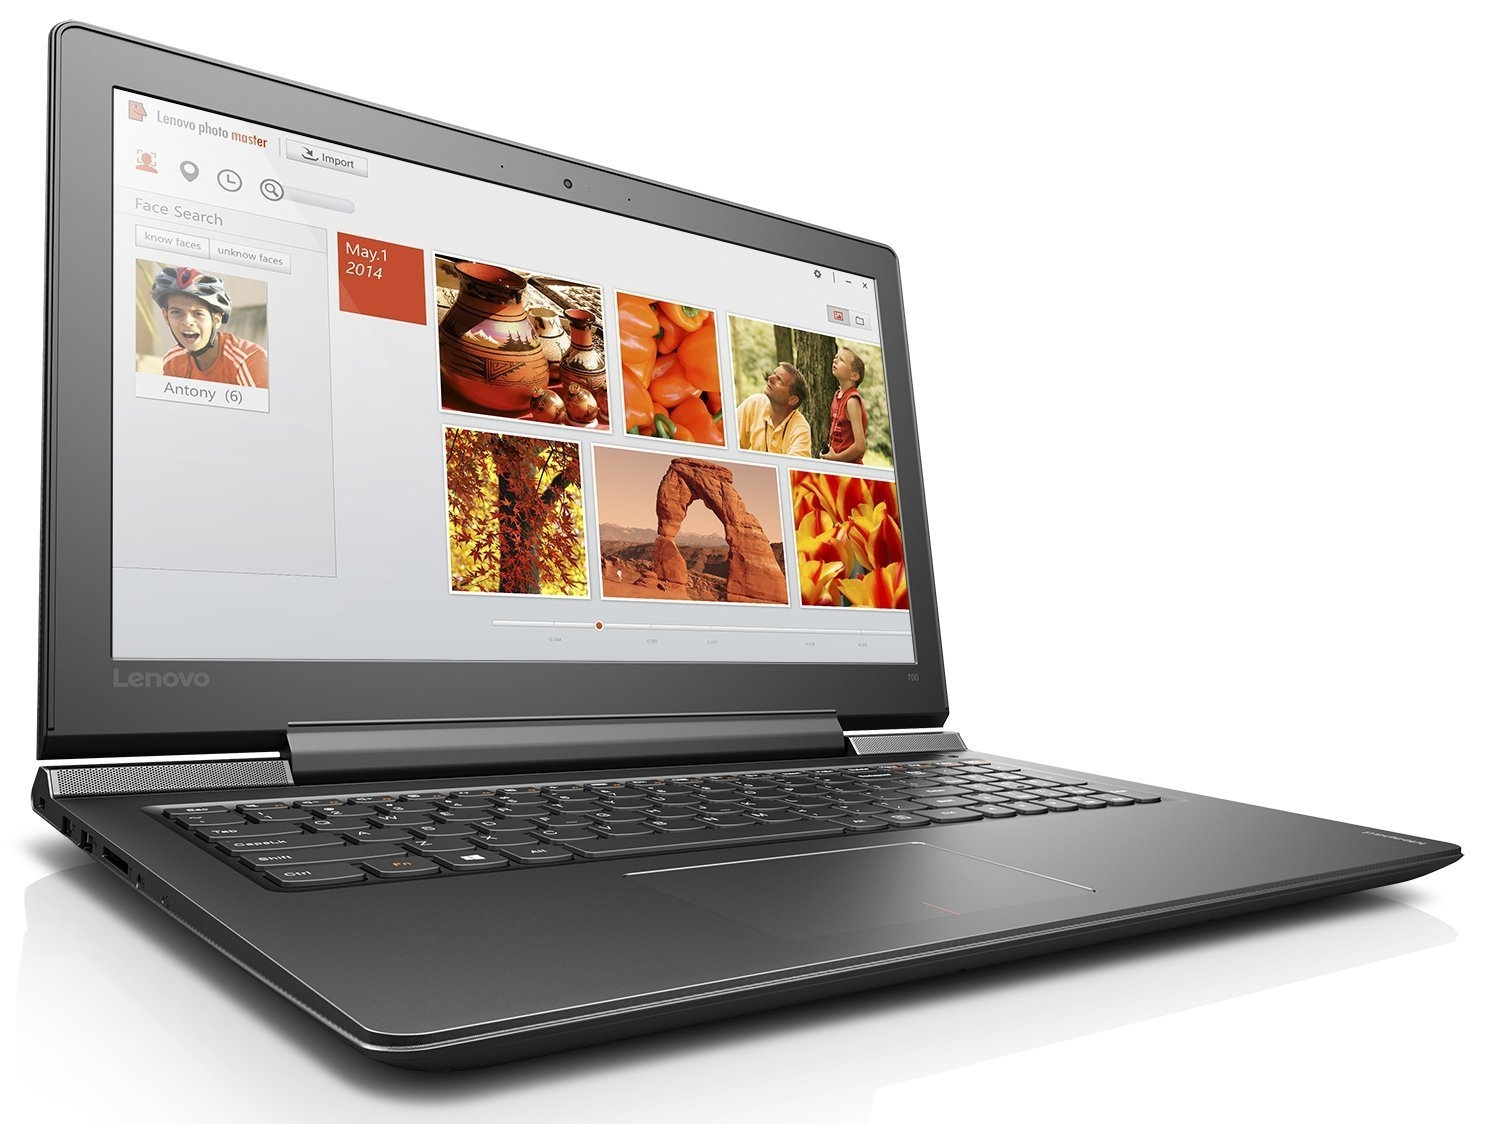 lenovo laptop for post processing your images in lightroom and photoshop